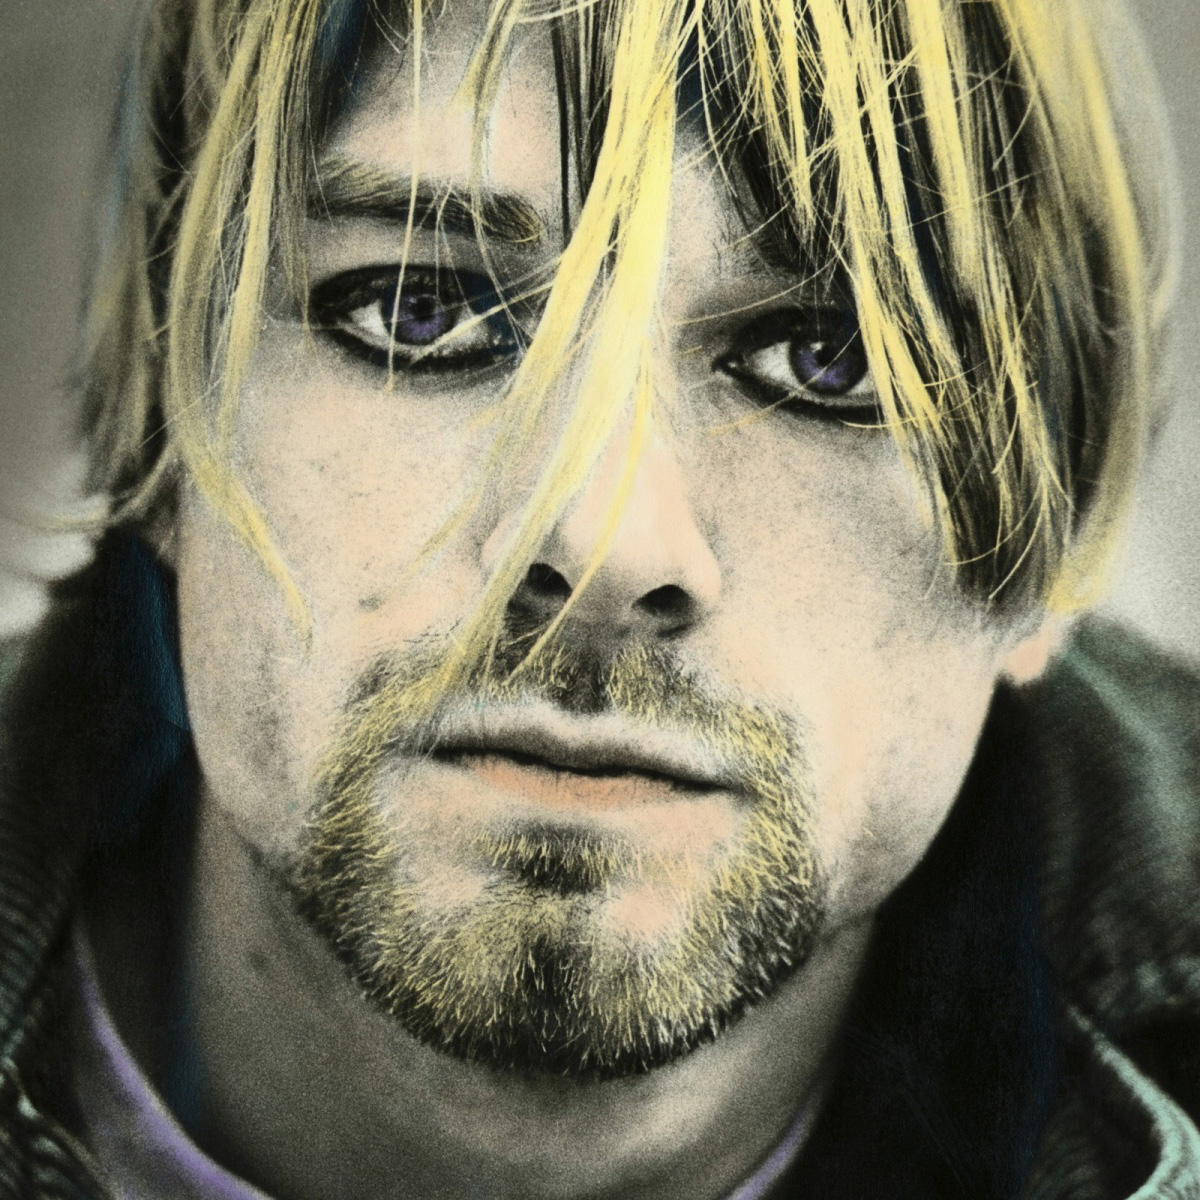 kurt cobain ipad 3 - photo #9